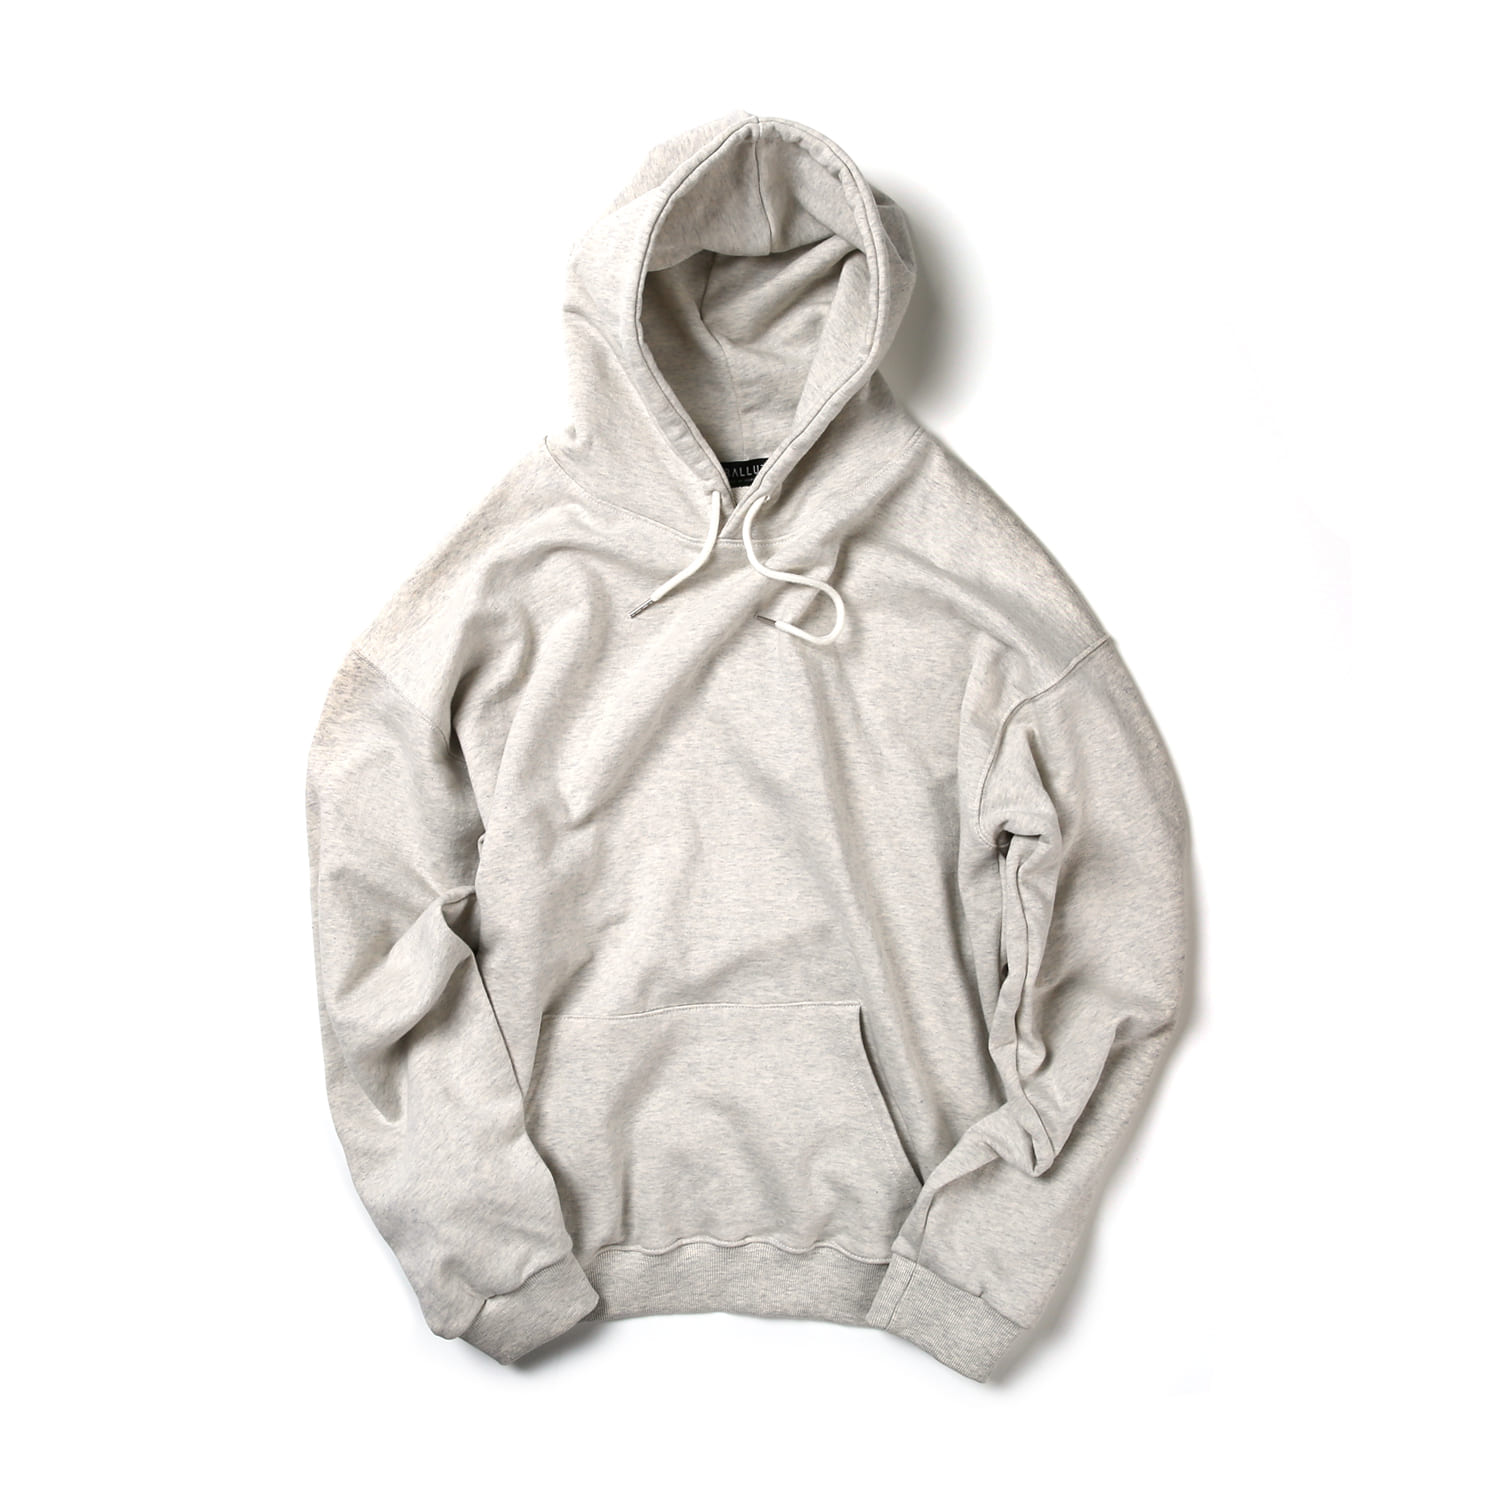 4 SEASONS HOODY (OATMEAL)